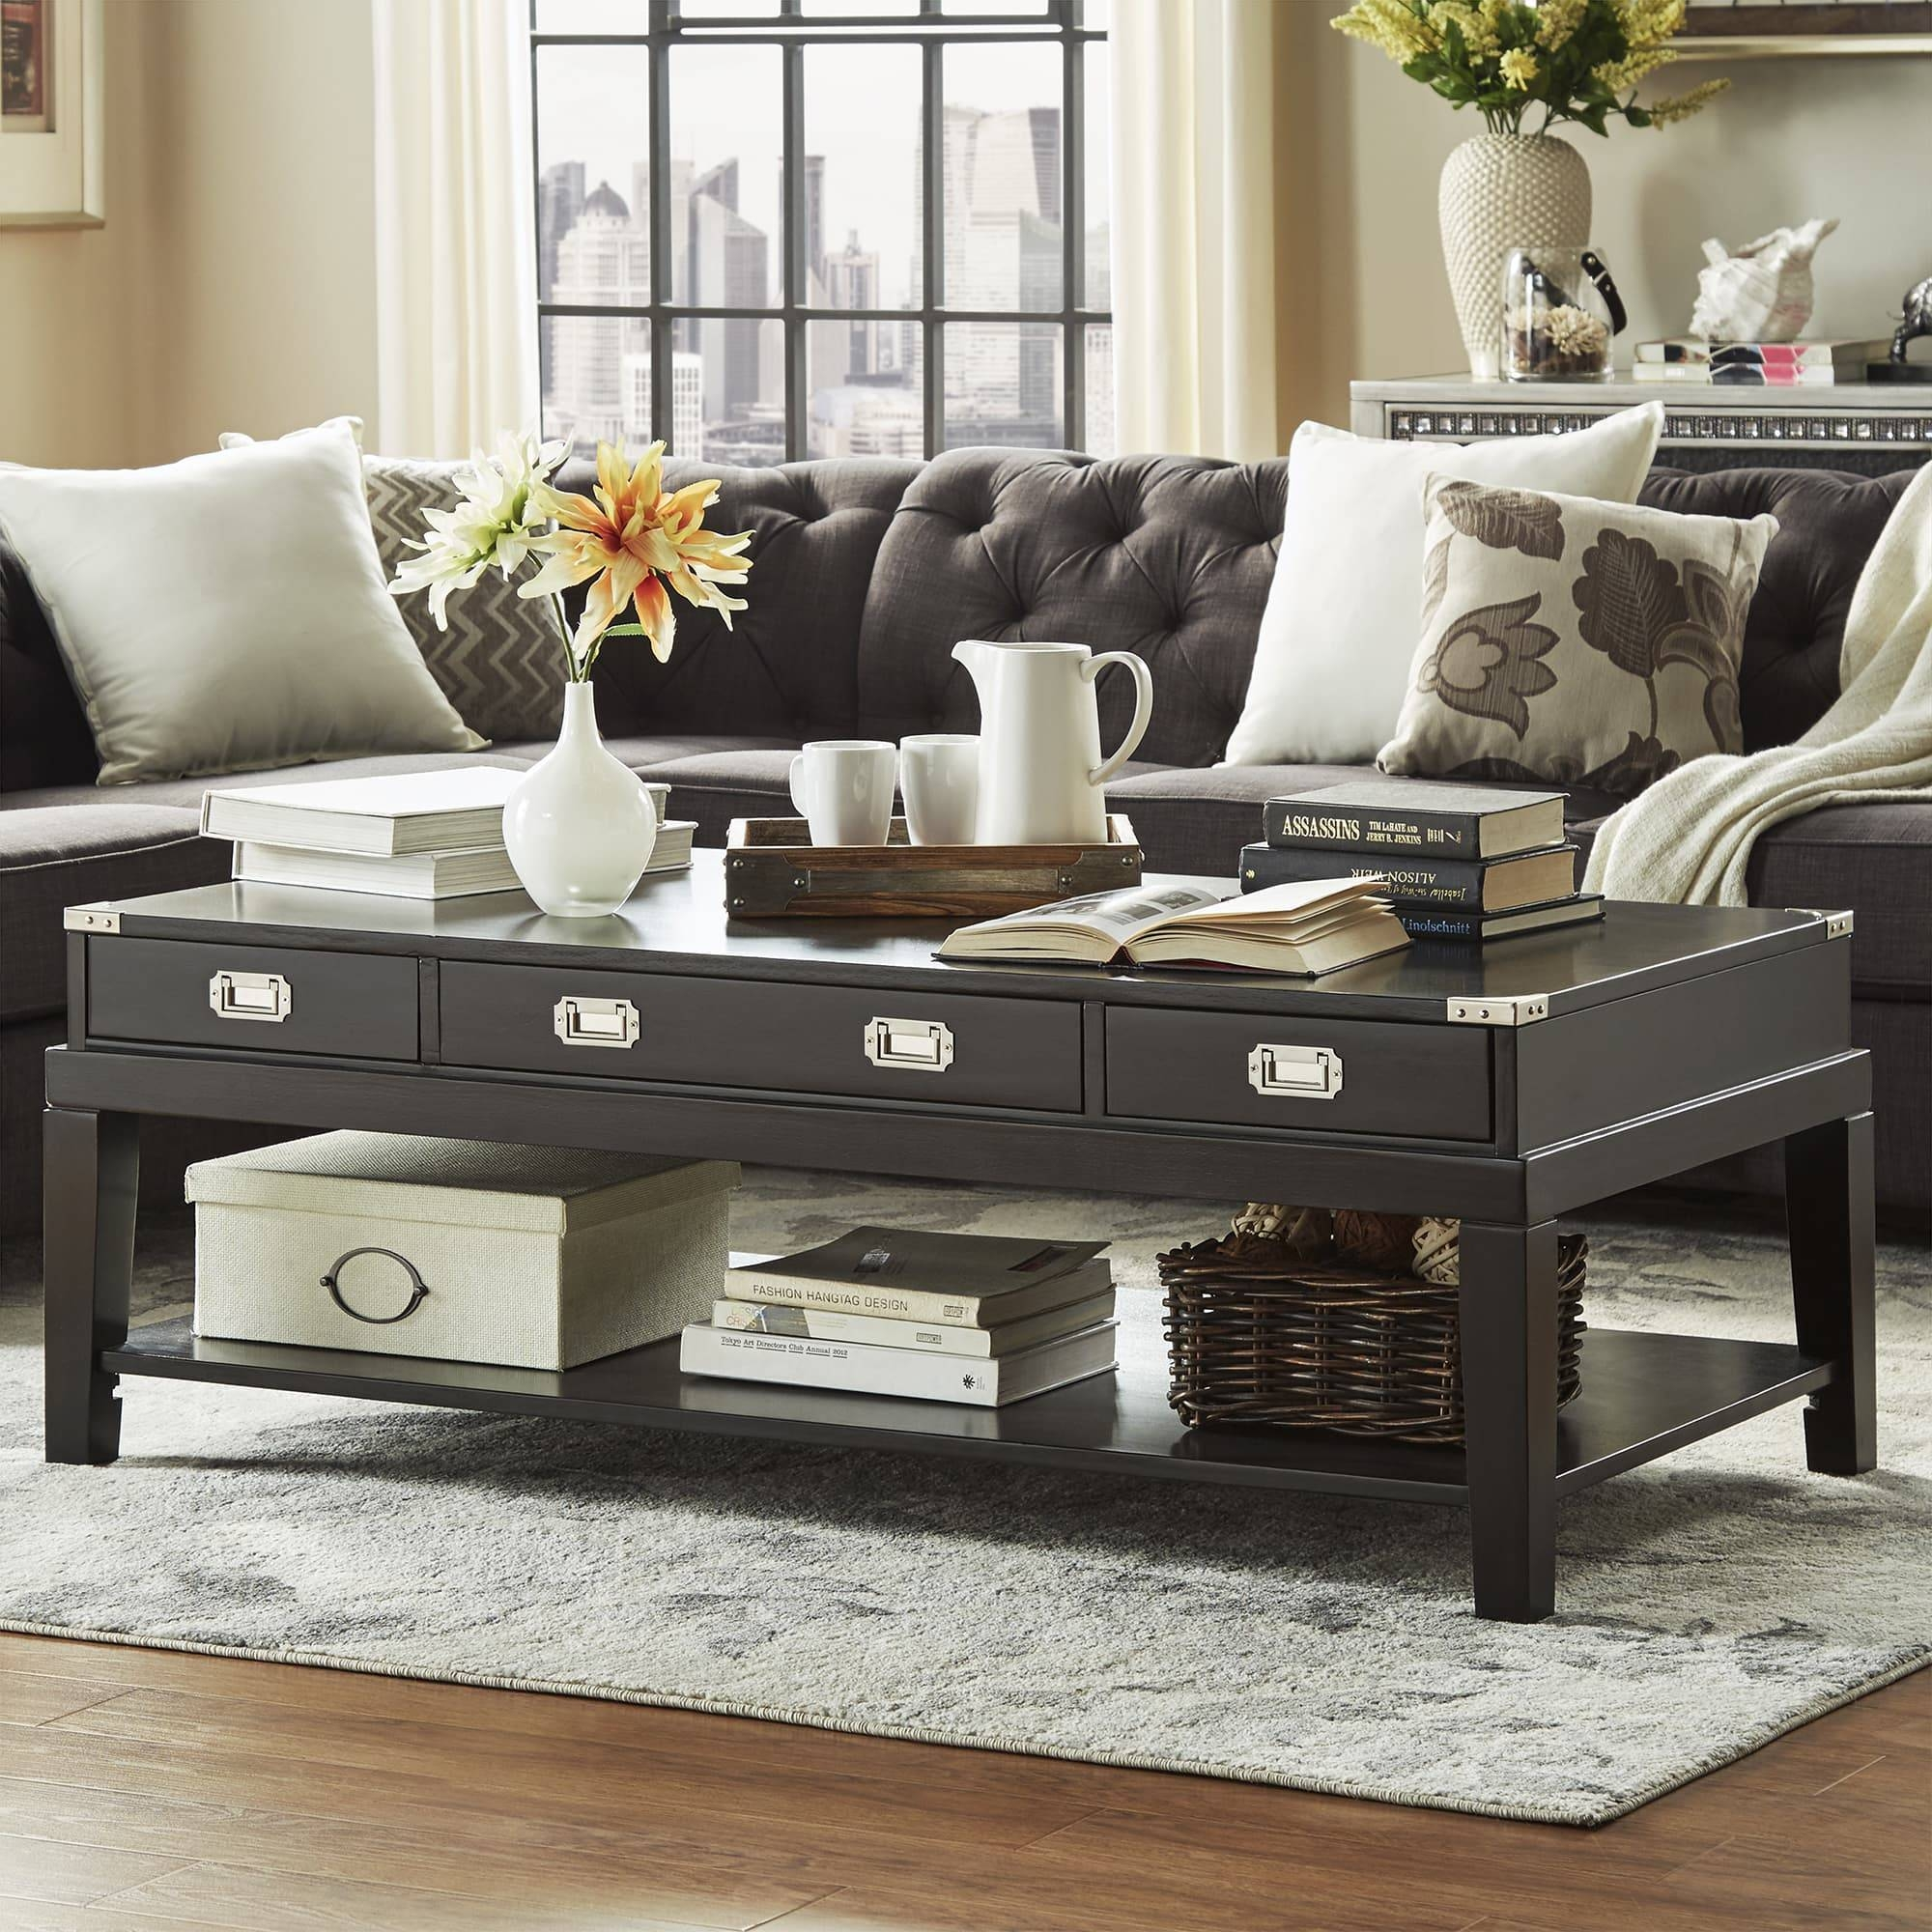 Lonny Wood Storage Accent Campaign Coffee Tableinspire Q for Campaign Coffee Tables (Image 18 of 30)